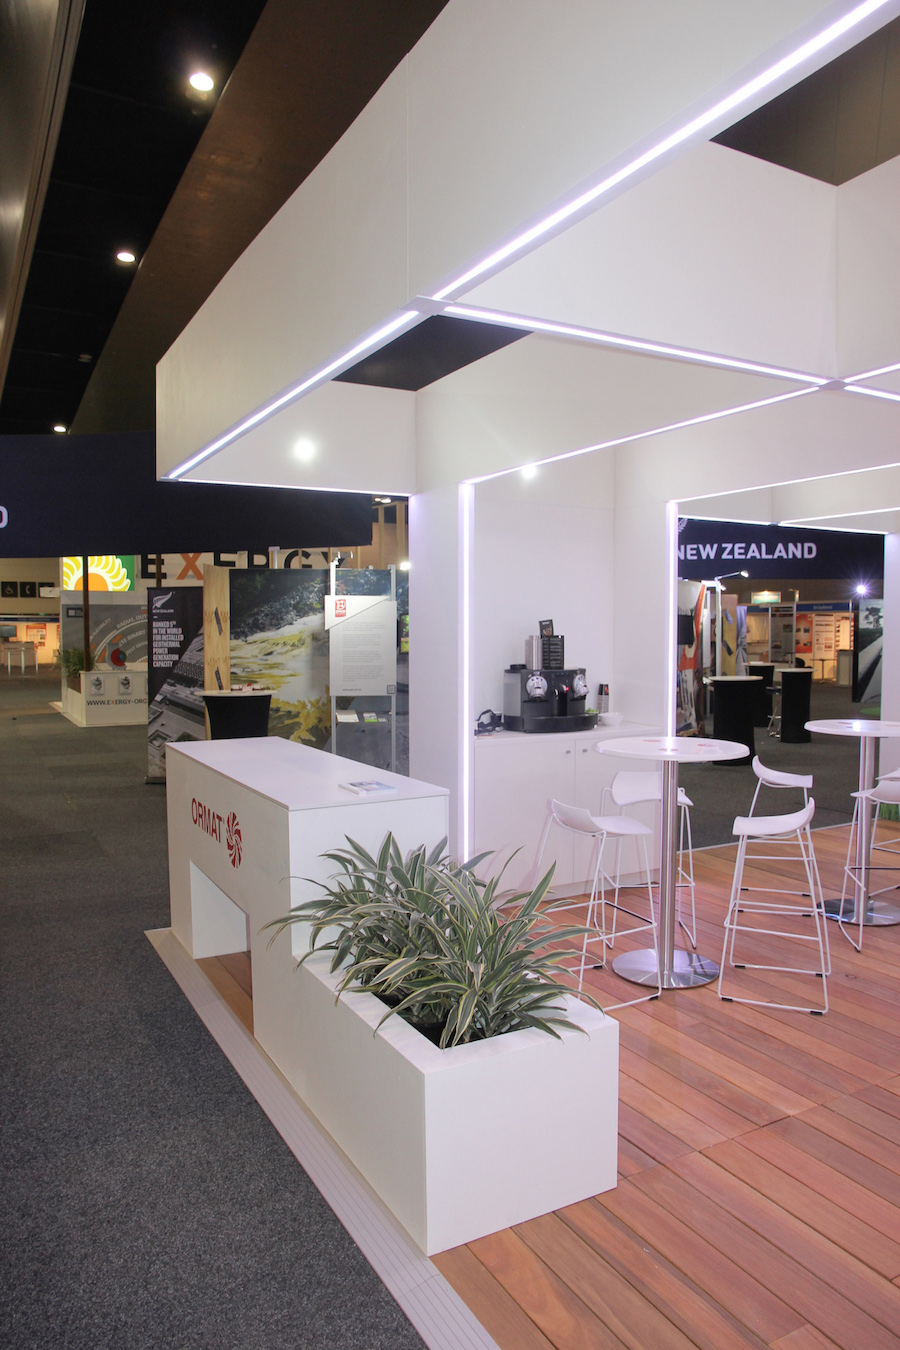 360-display-retail-expo-systems-stands-hire-designers-sydney-melbourne-newcastle-gold-coast-brisbane-Ormat-3.jpg